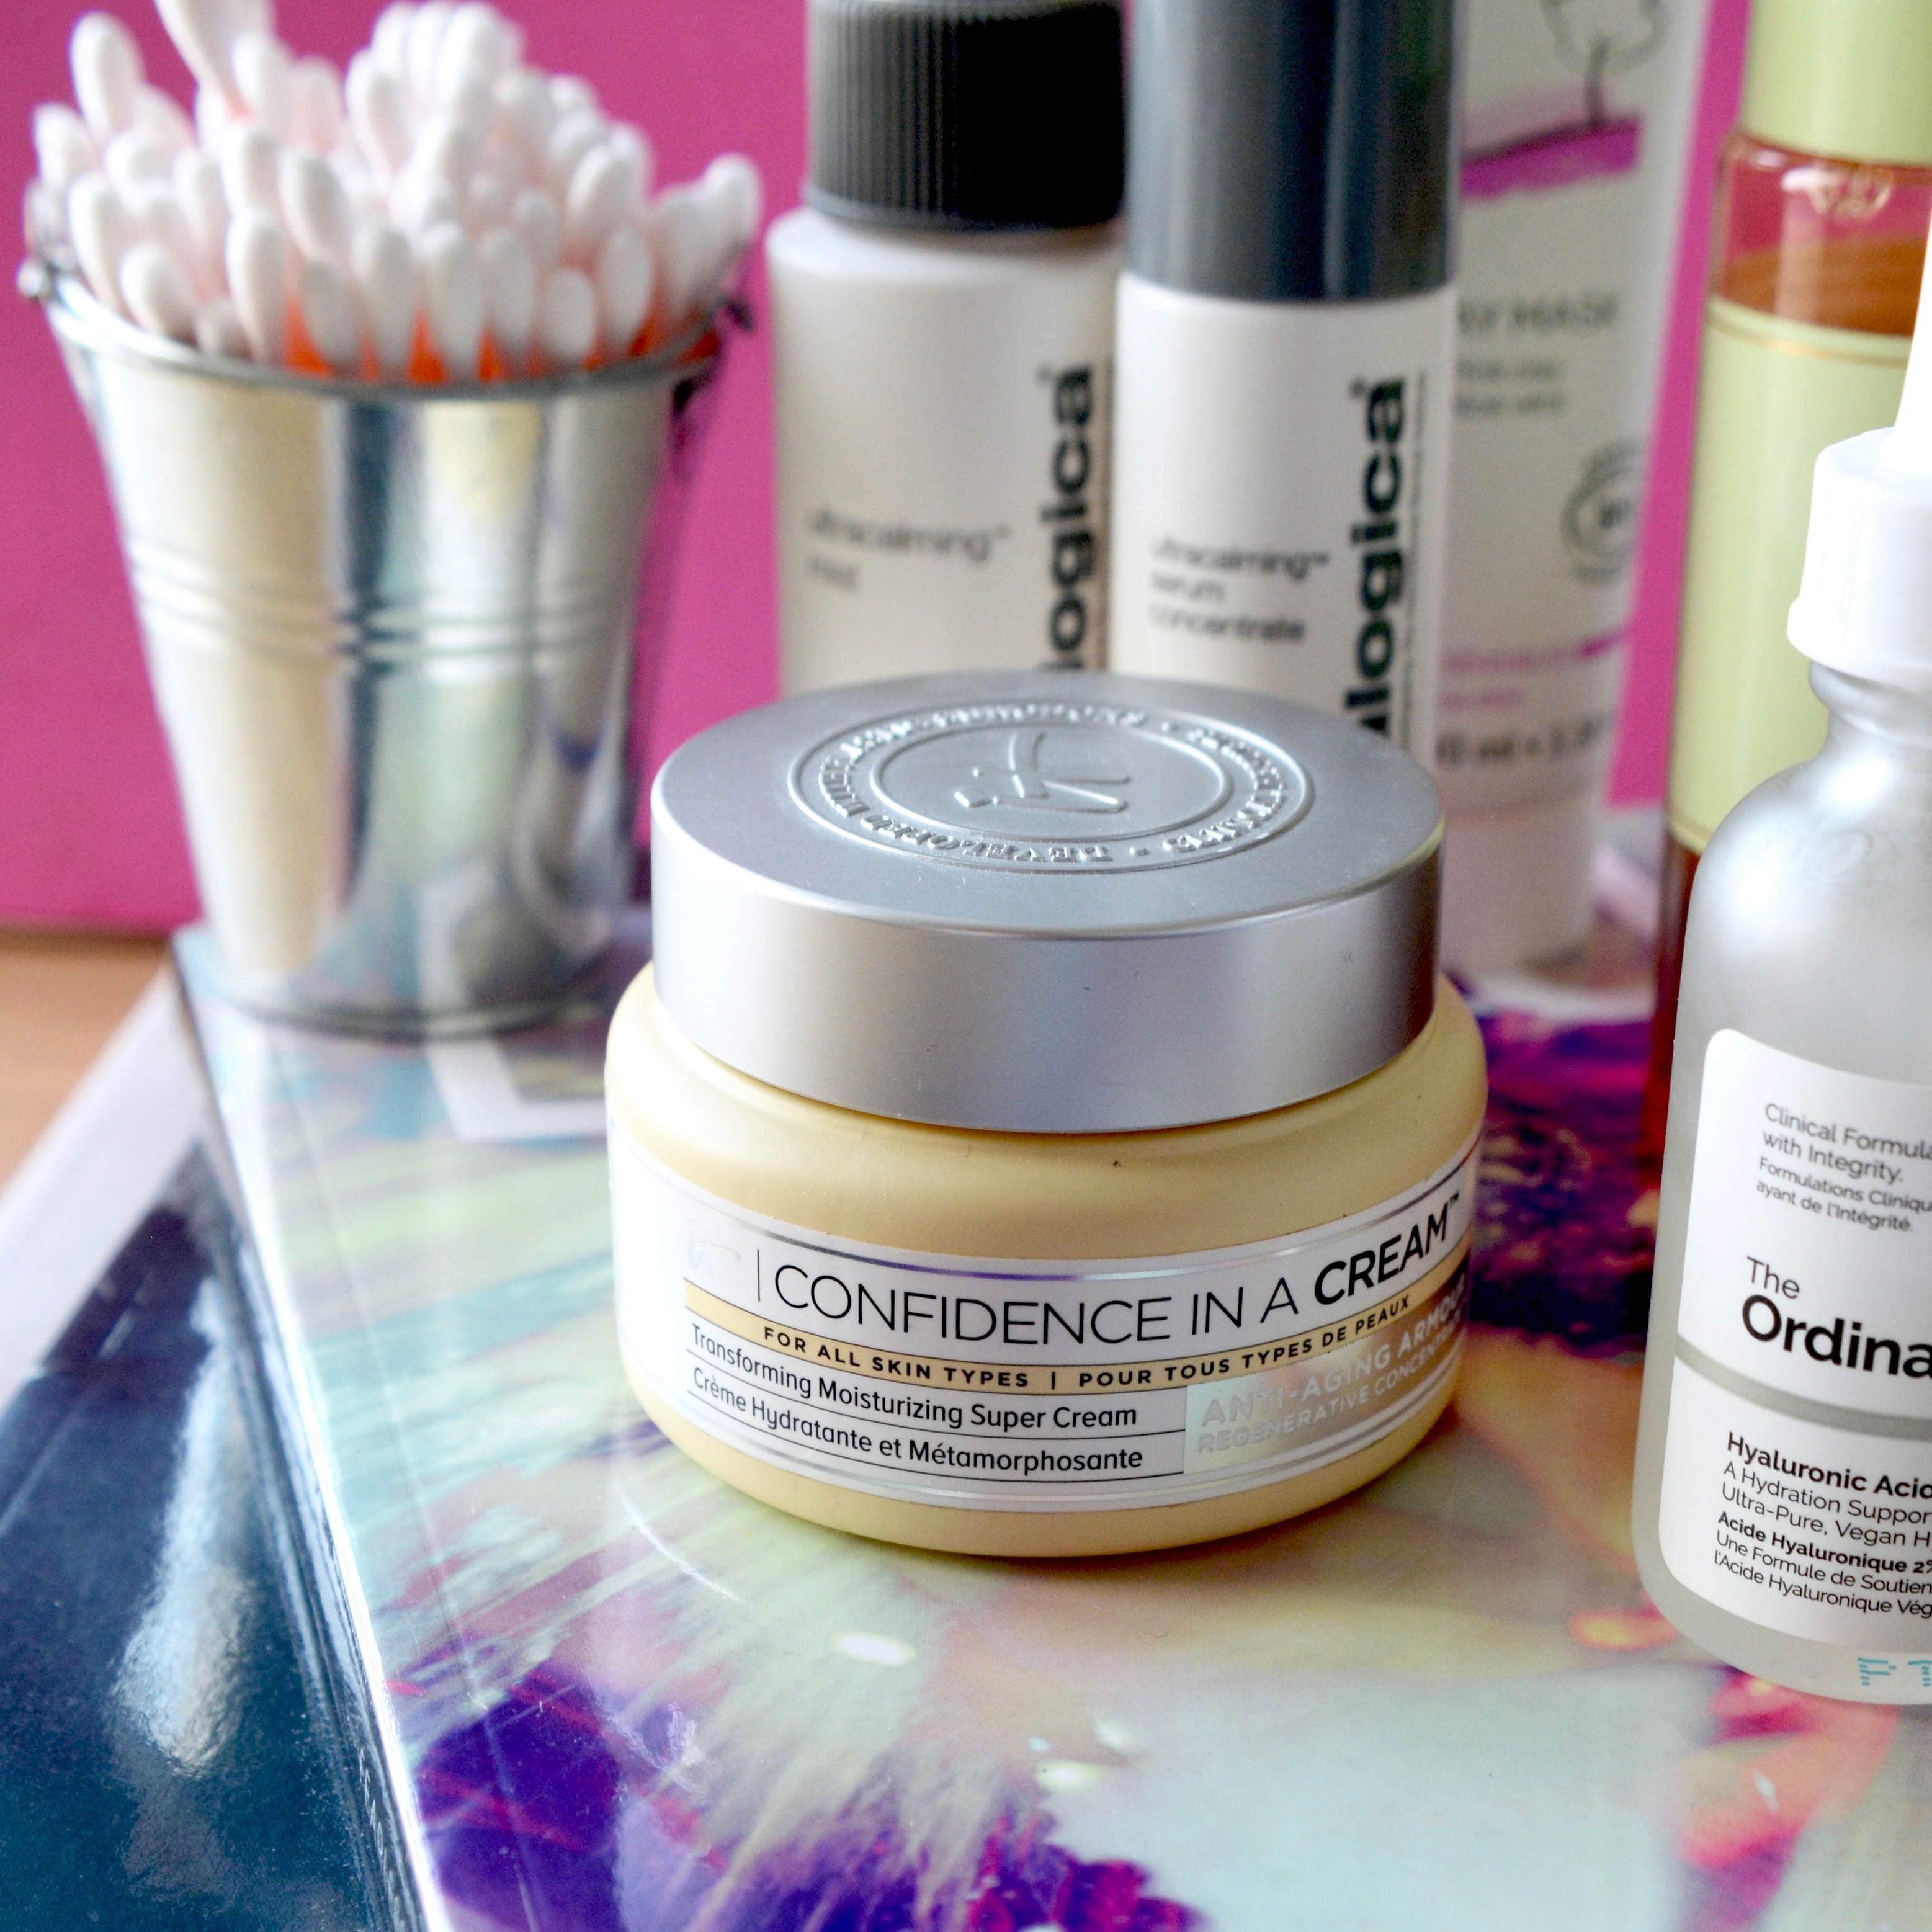 Skincare Shake Up October 2017 - IT Cosmetics Confidence In A Cream (full skincare routine for sensitive/rosacea skin)